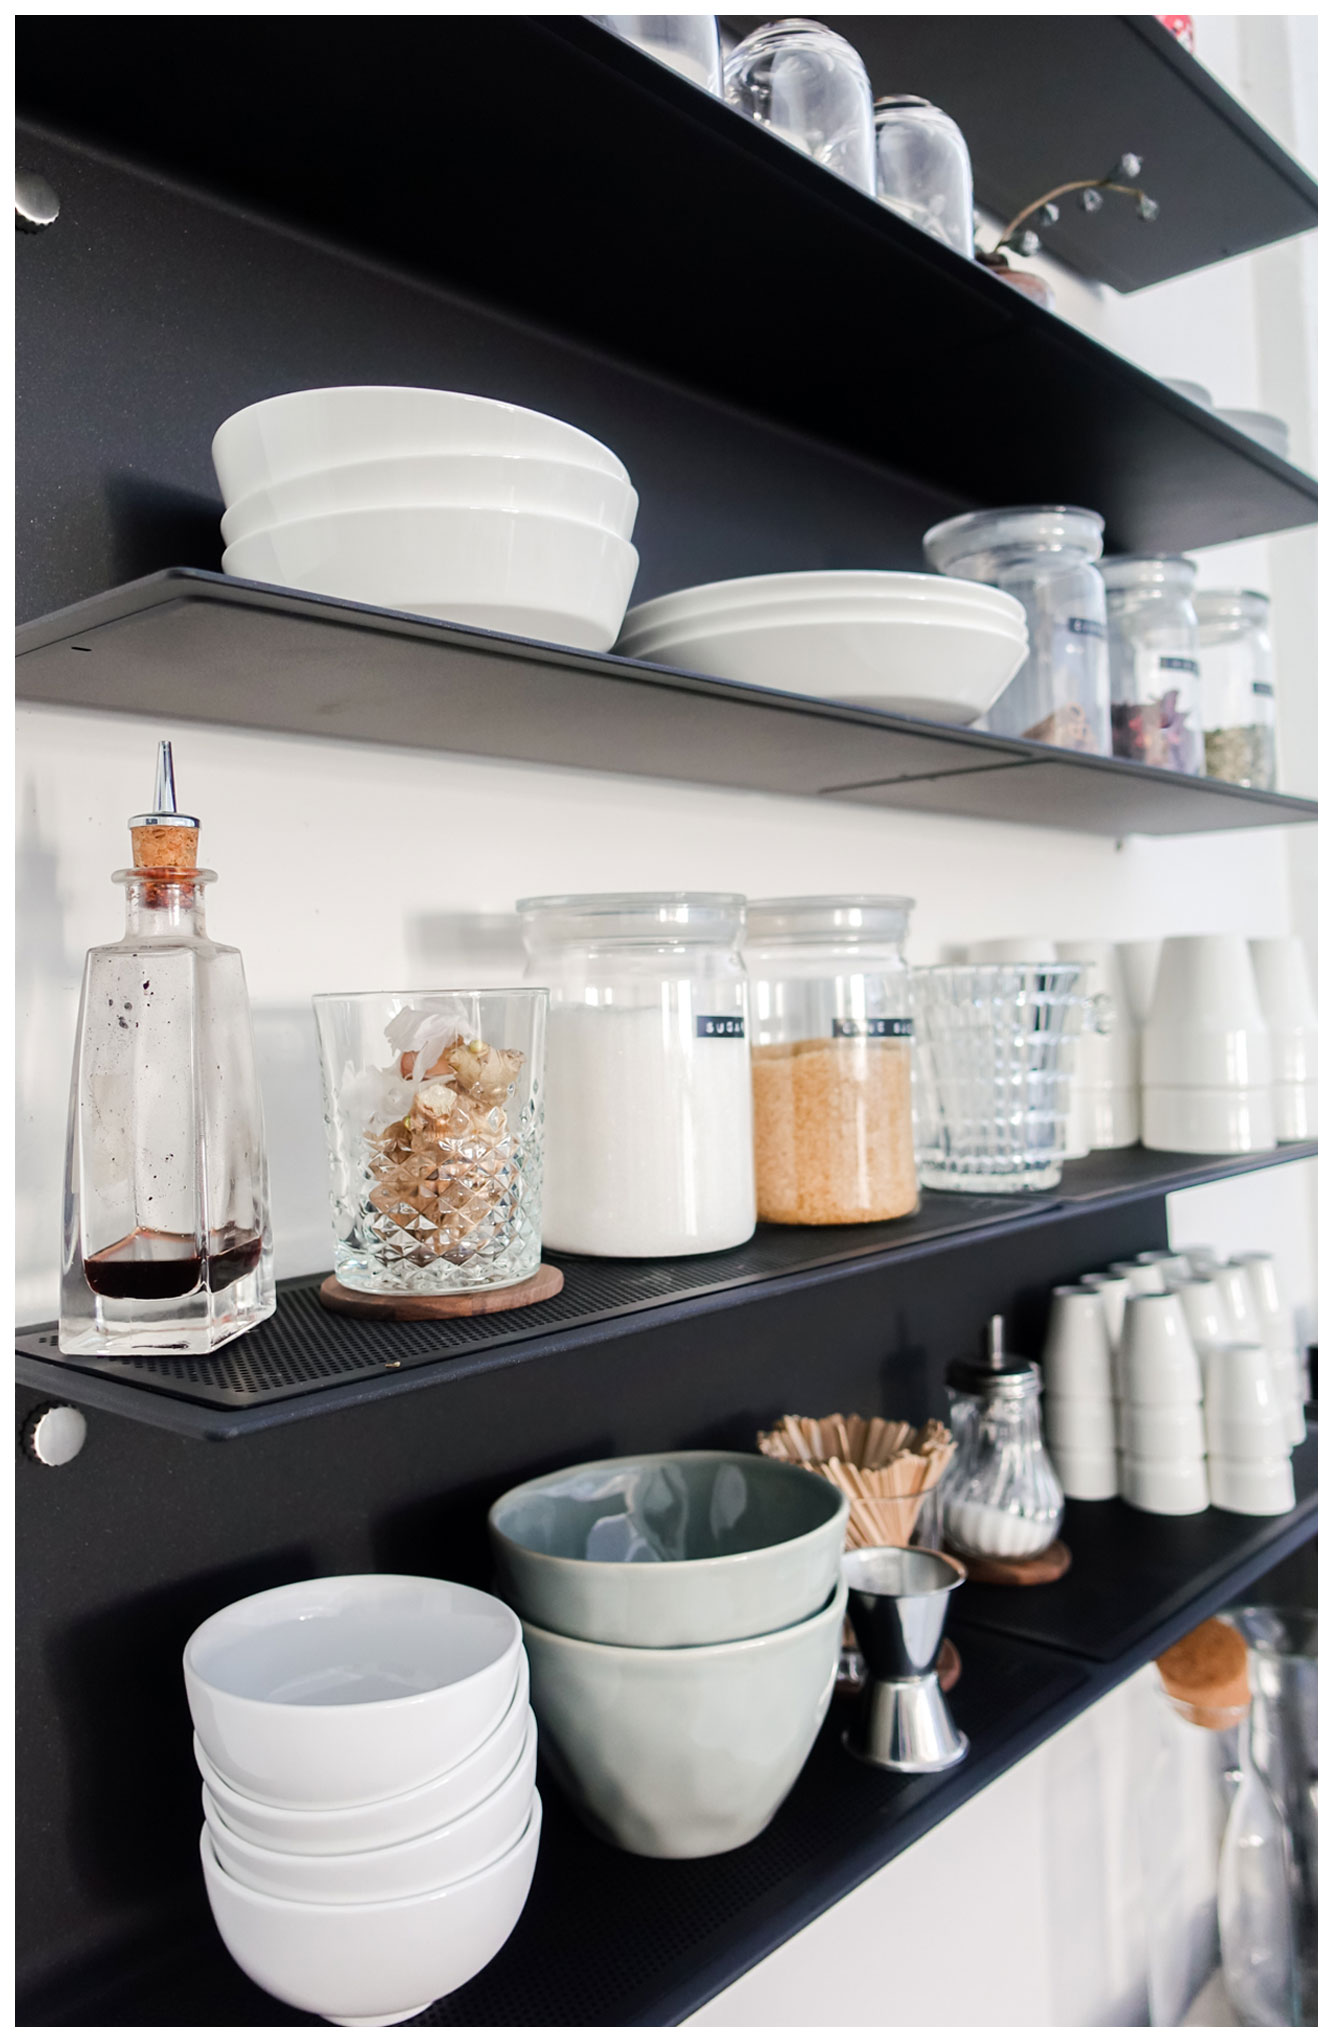 Vipp shelf with Atelier Pfister plates and decorations